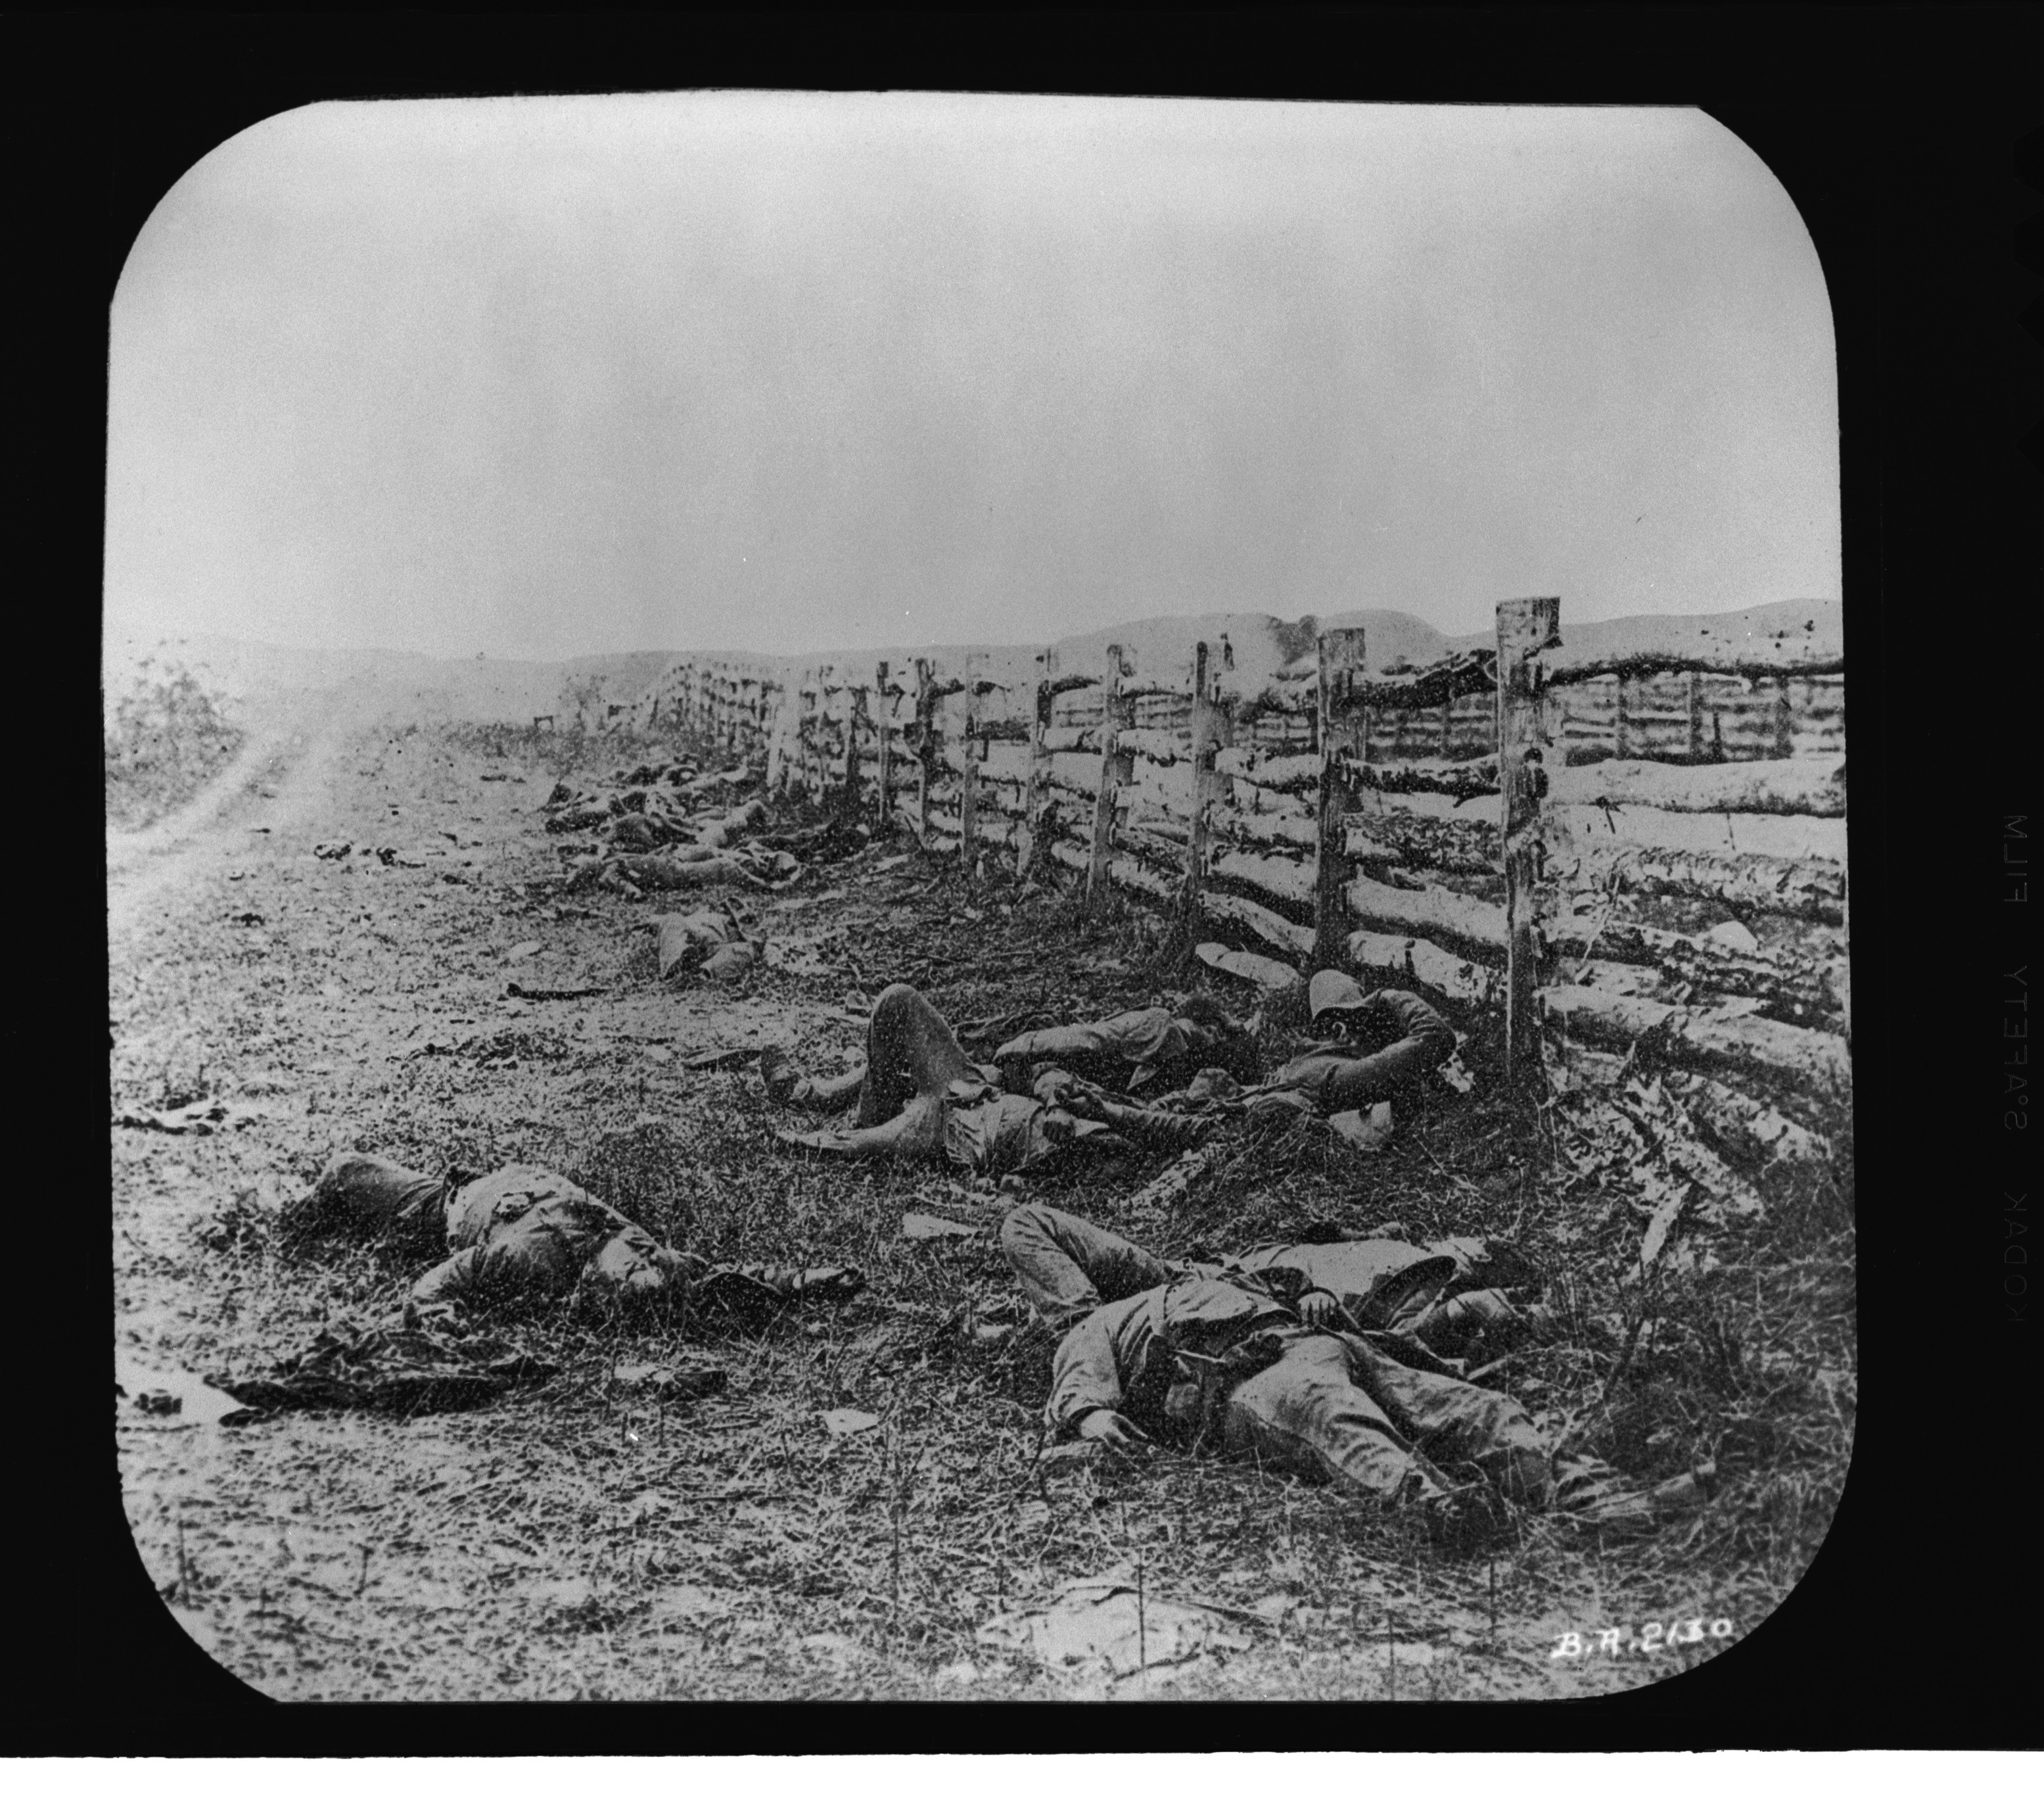 a history of the battle of antietam in the american civil war The battle of antietam is remembered as bloodiest single day in american history by the end of september 17, 1862, after twelve hours of intense fighting, over.